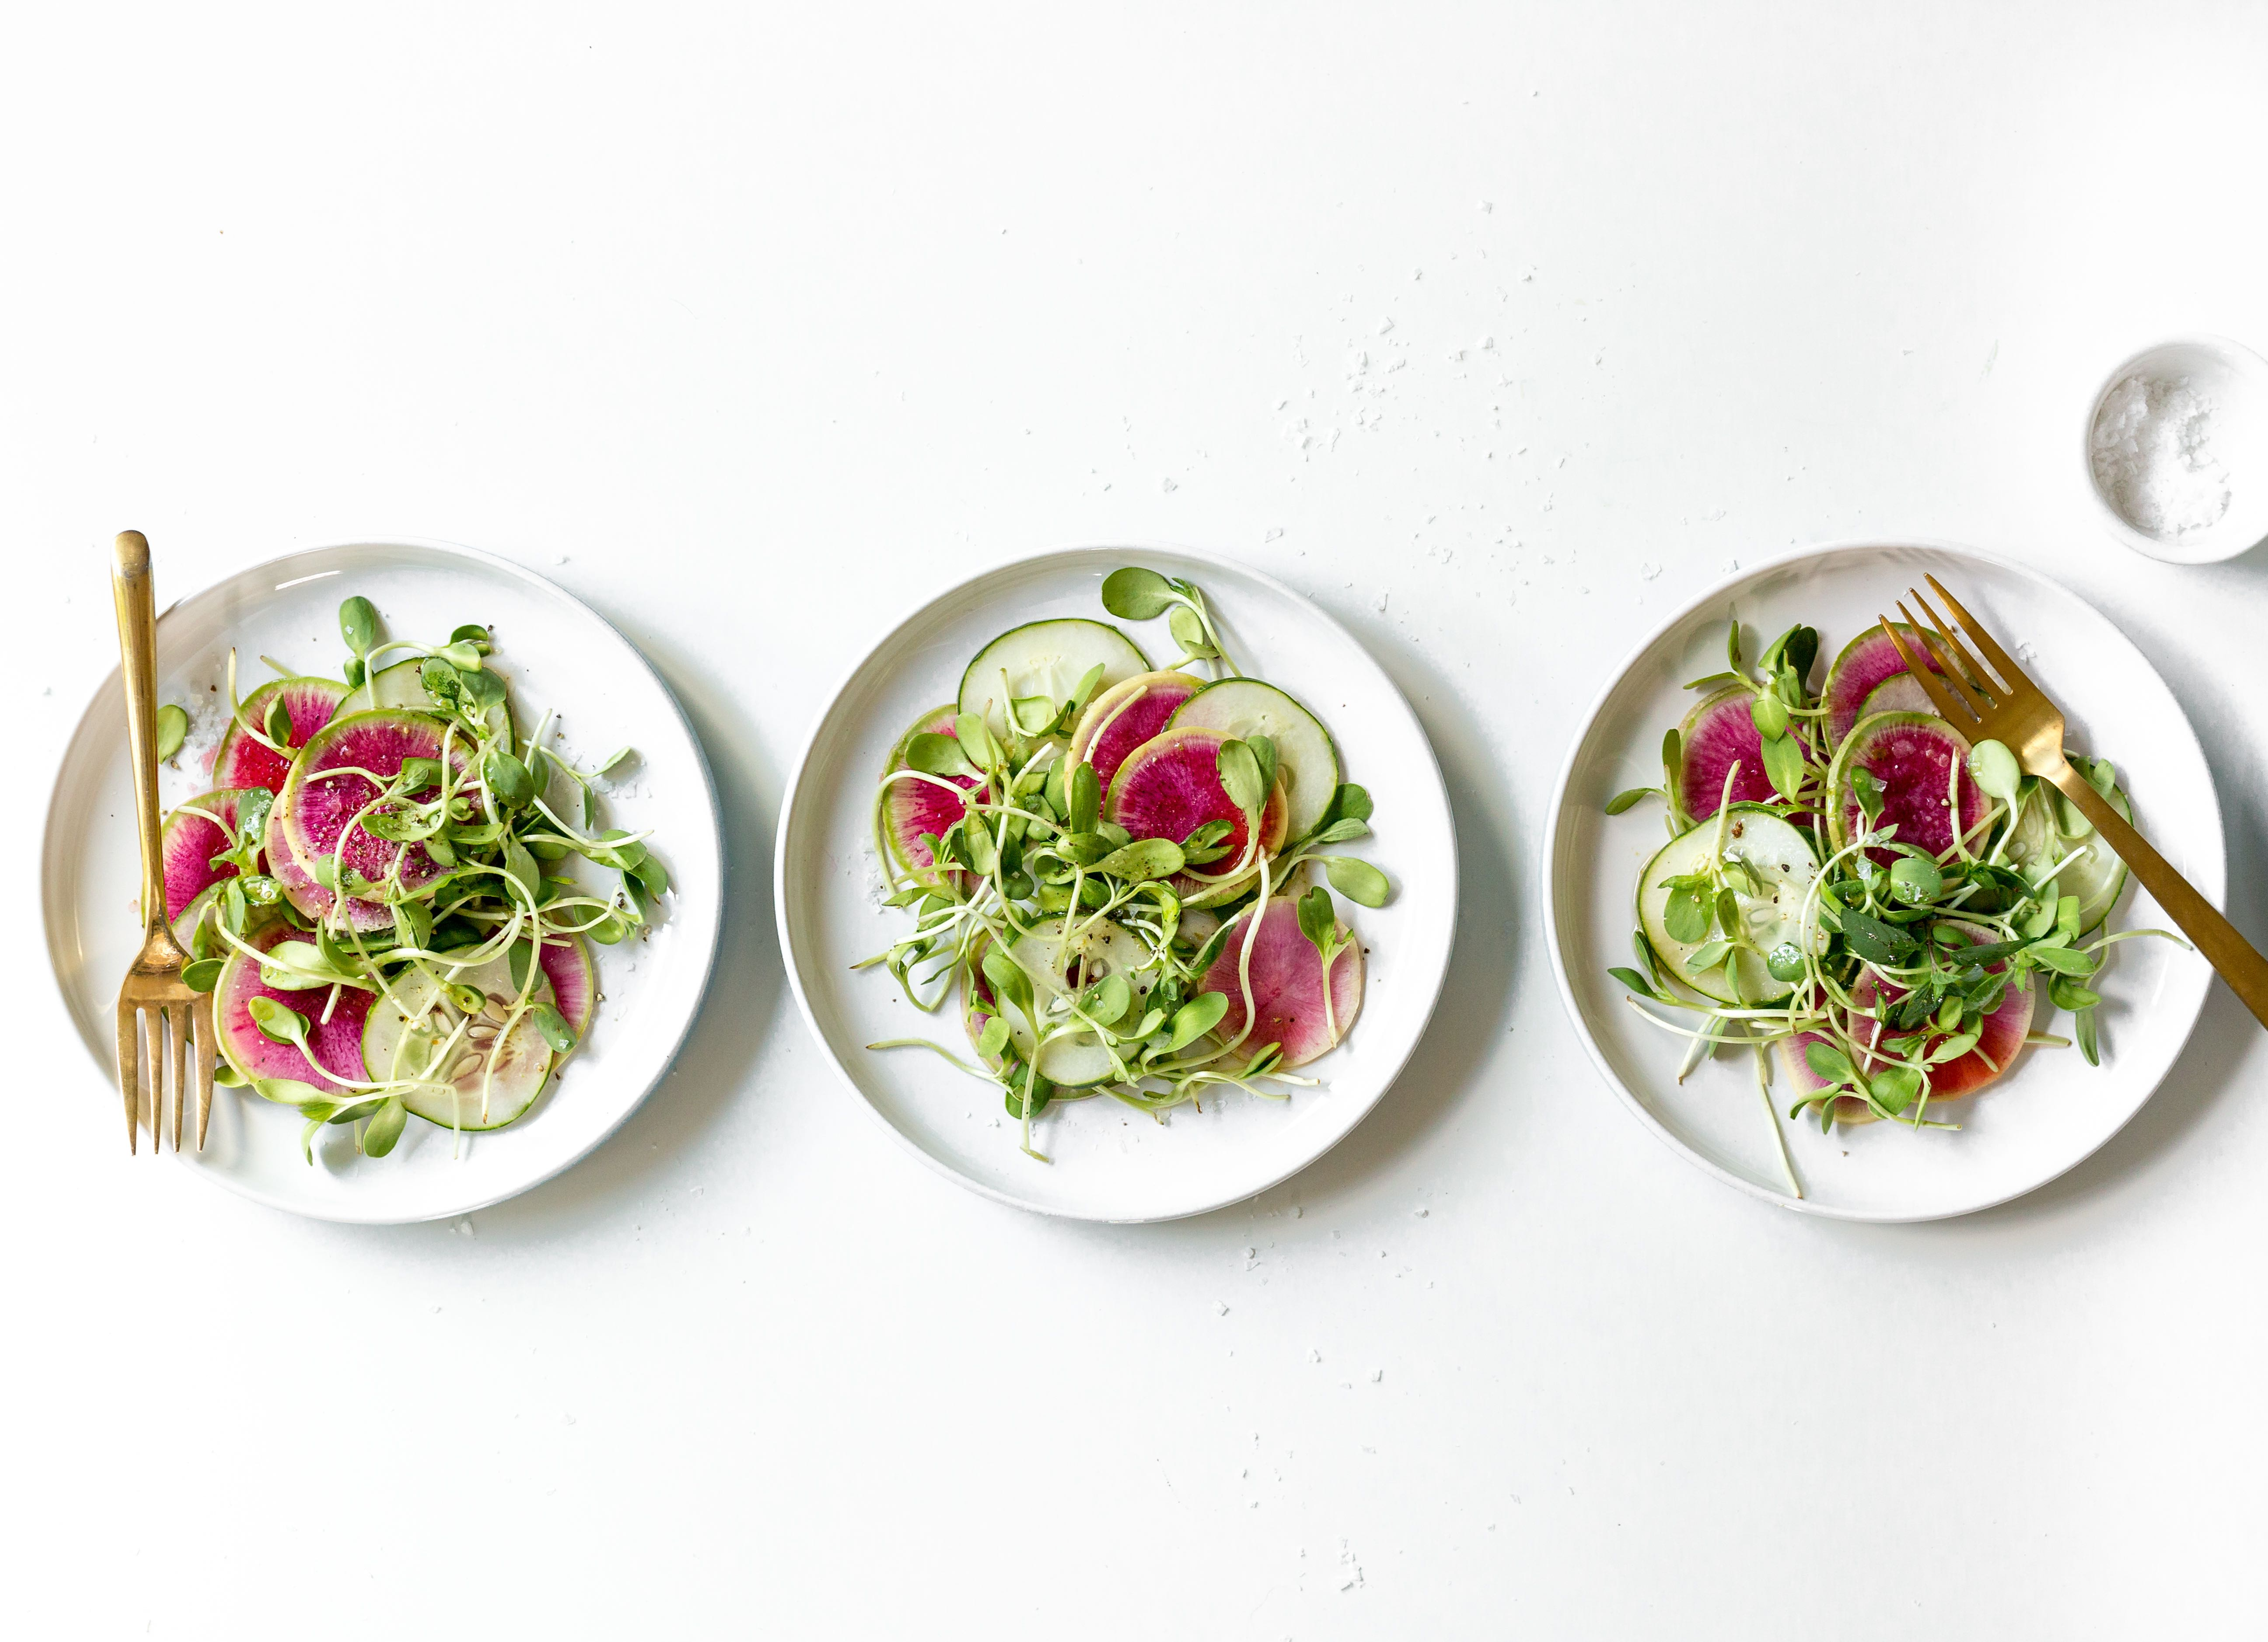 Watermelon Radish And Cucumber Sesame Salad The Inspired Home The Inspired Home